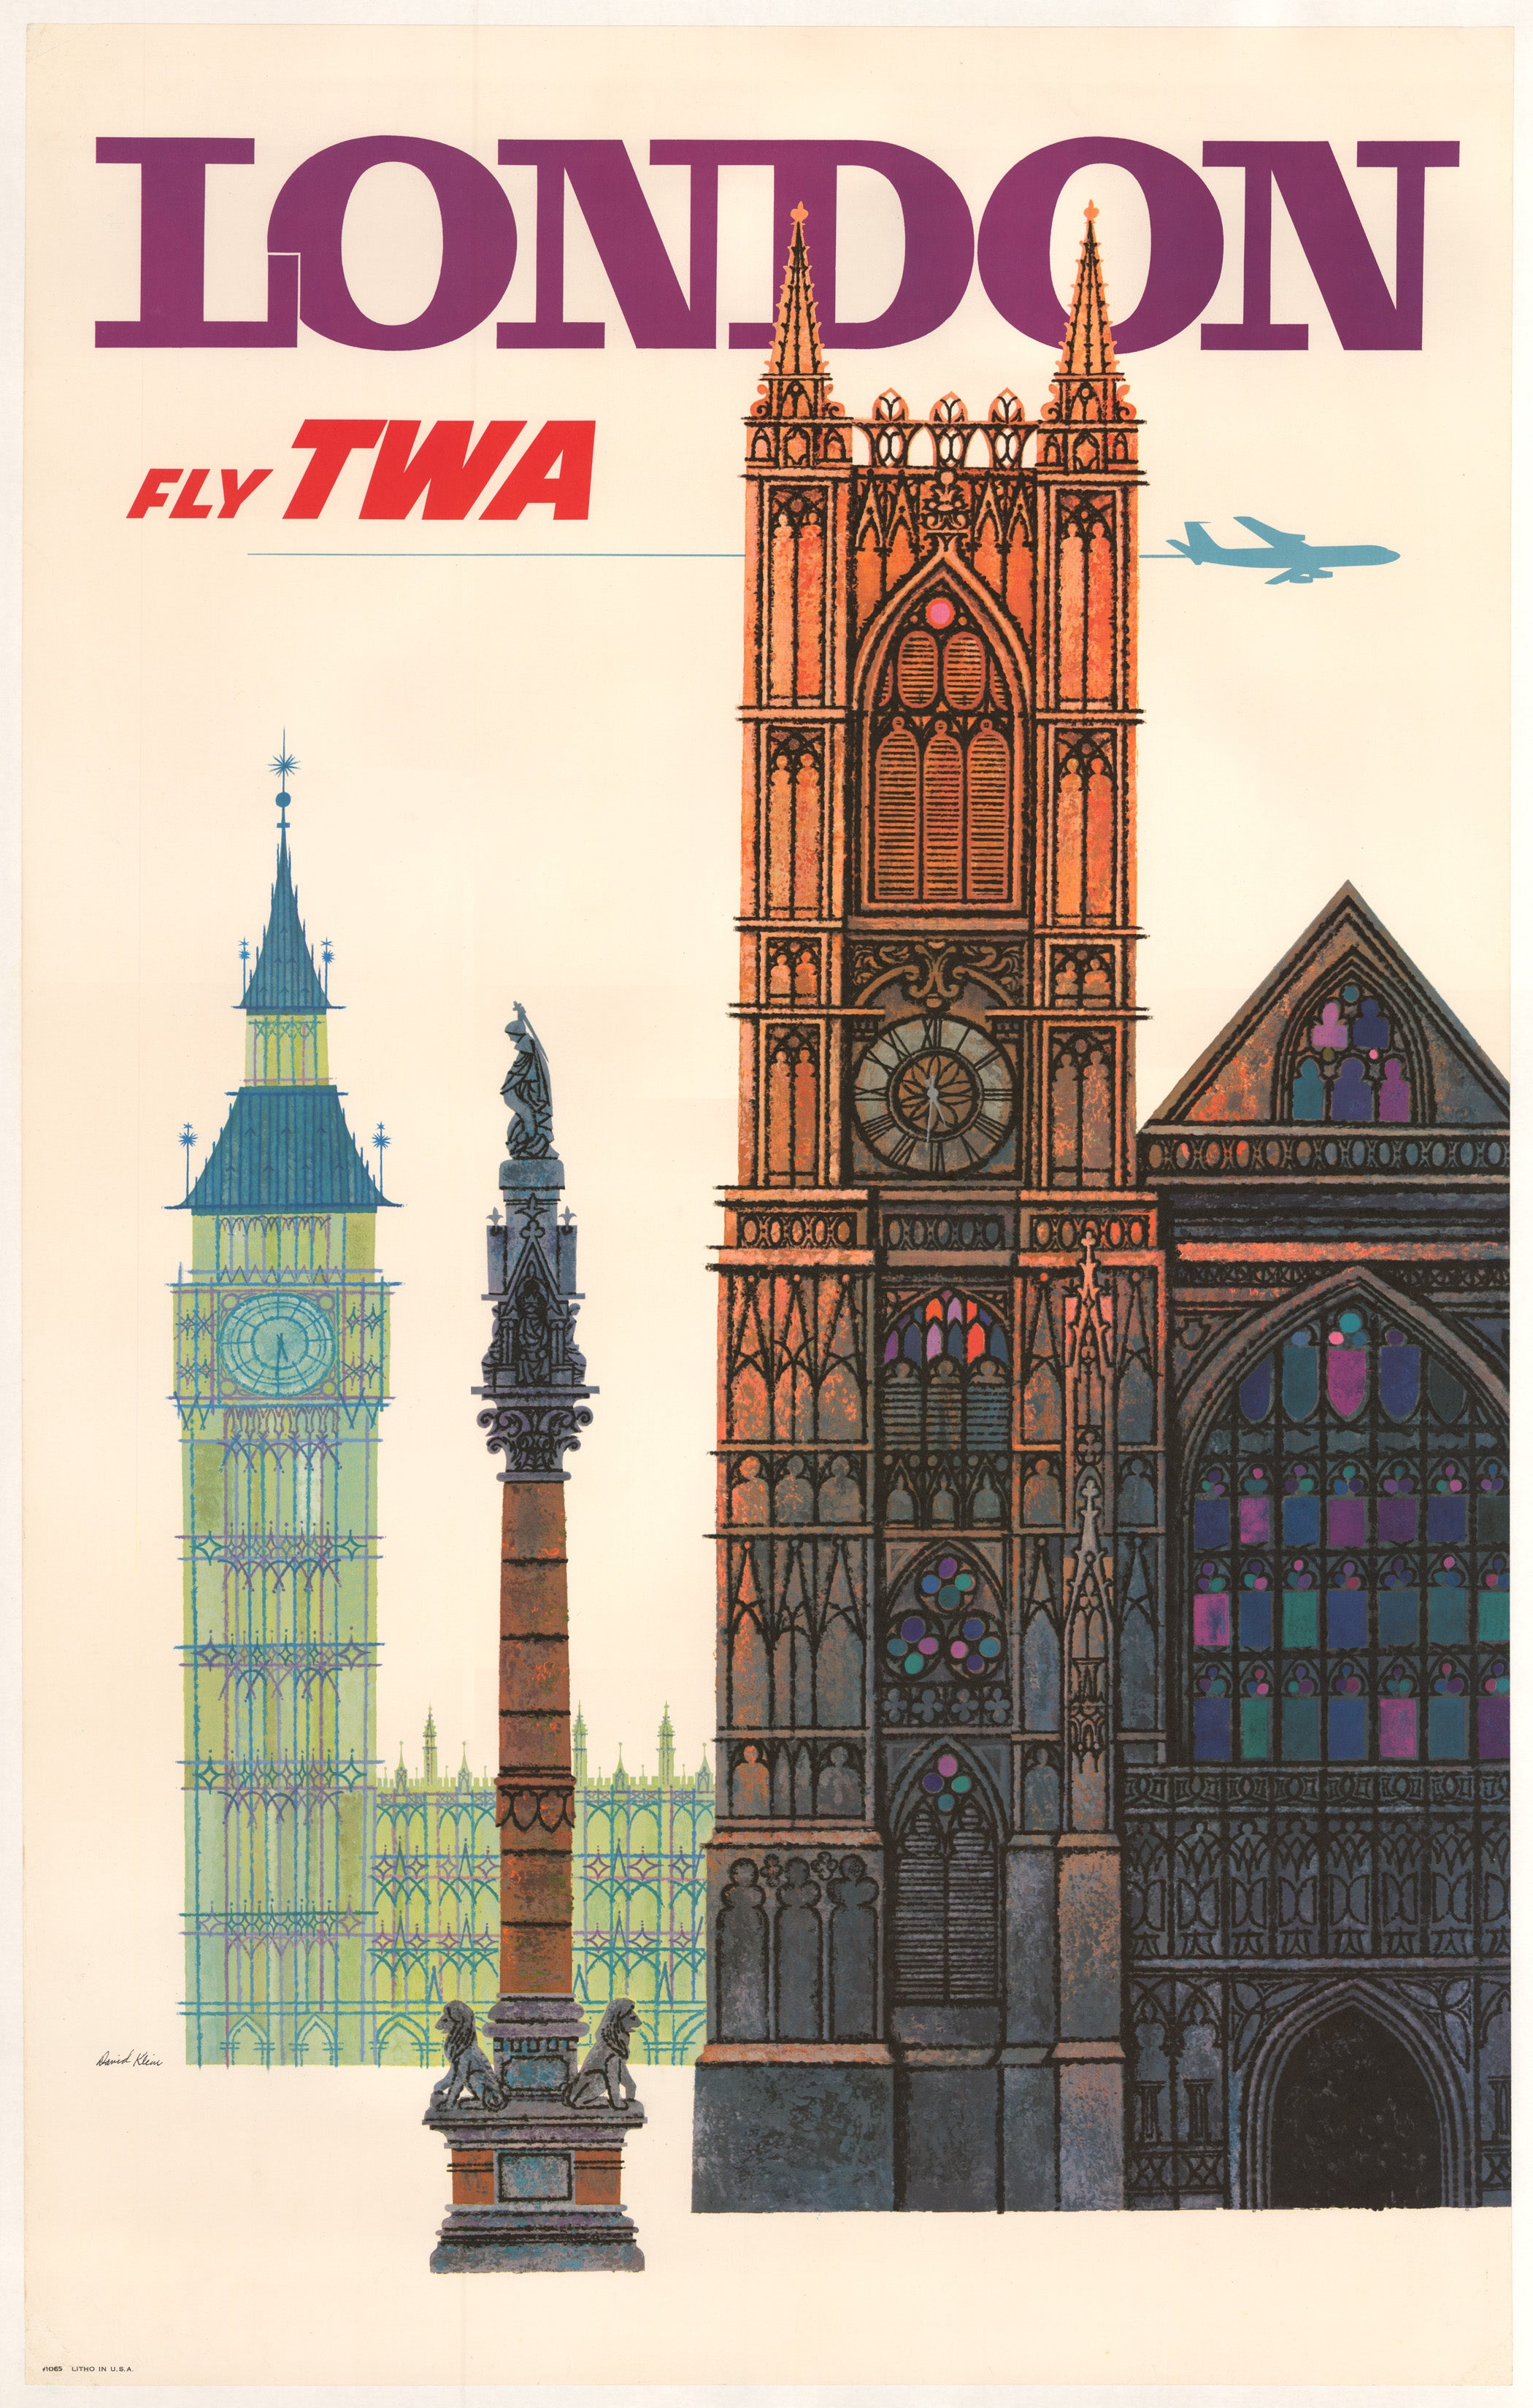 Fly TWA London